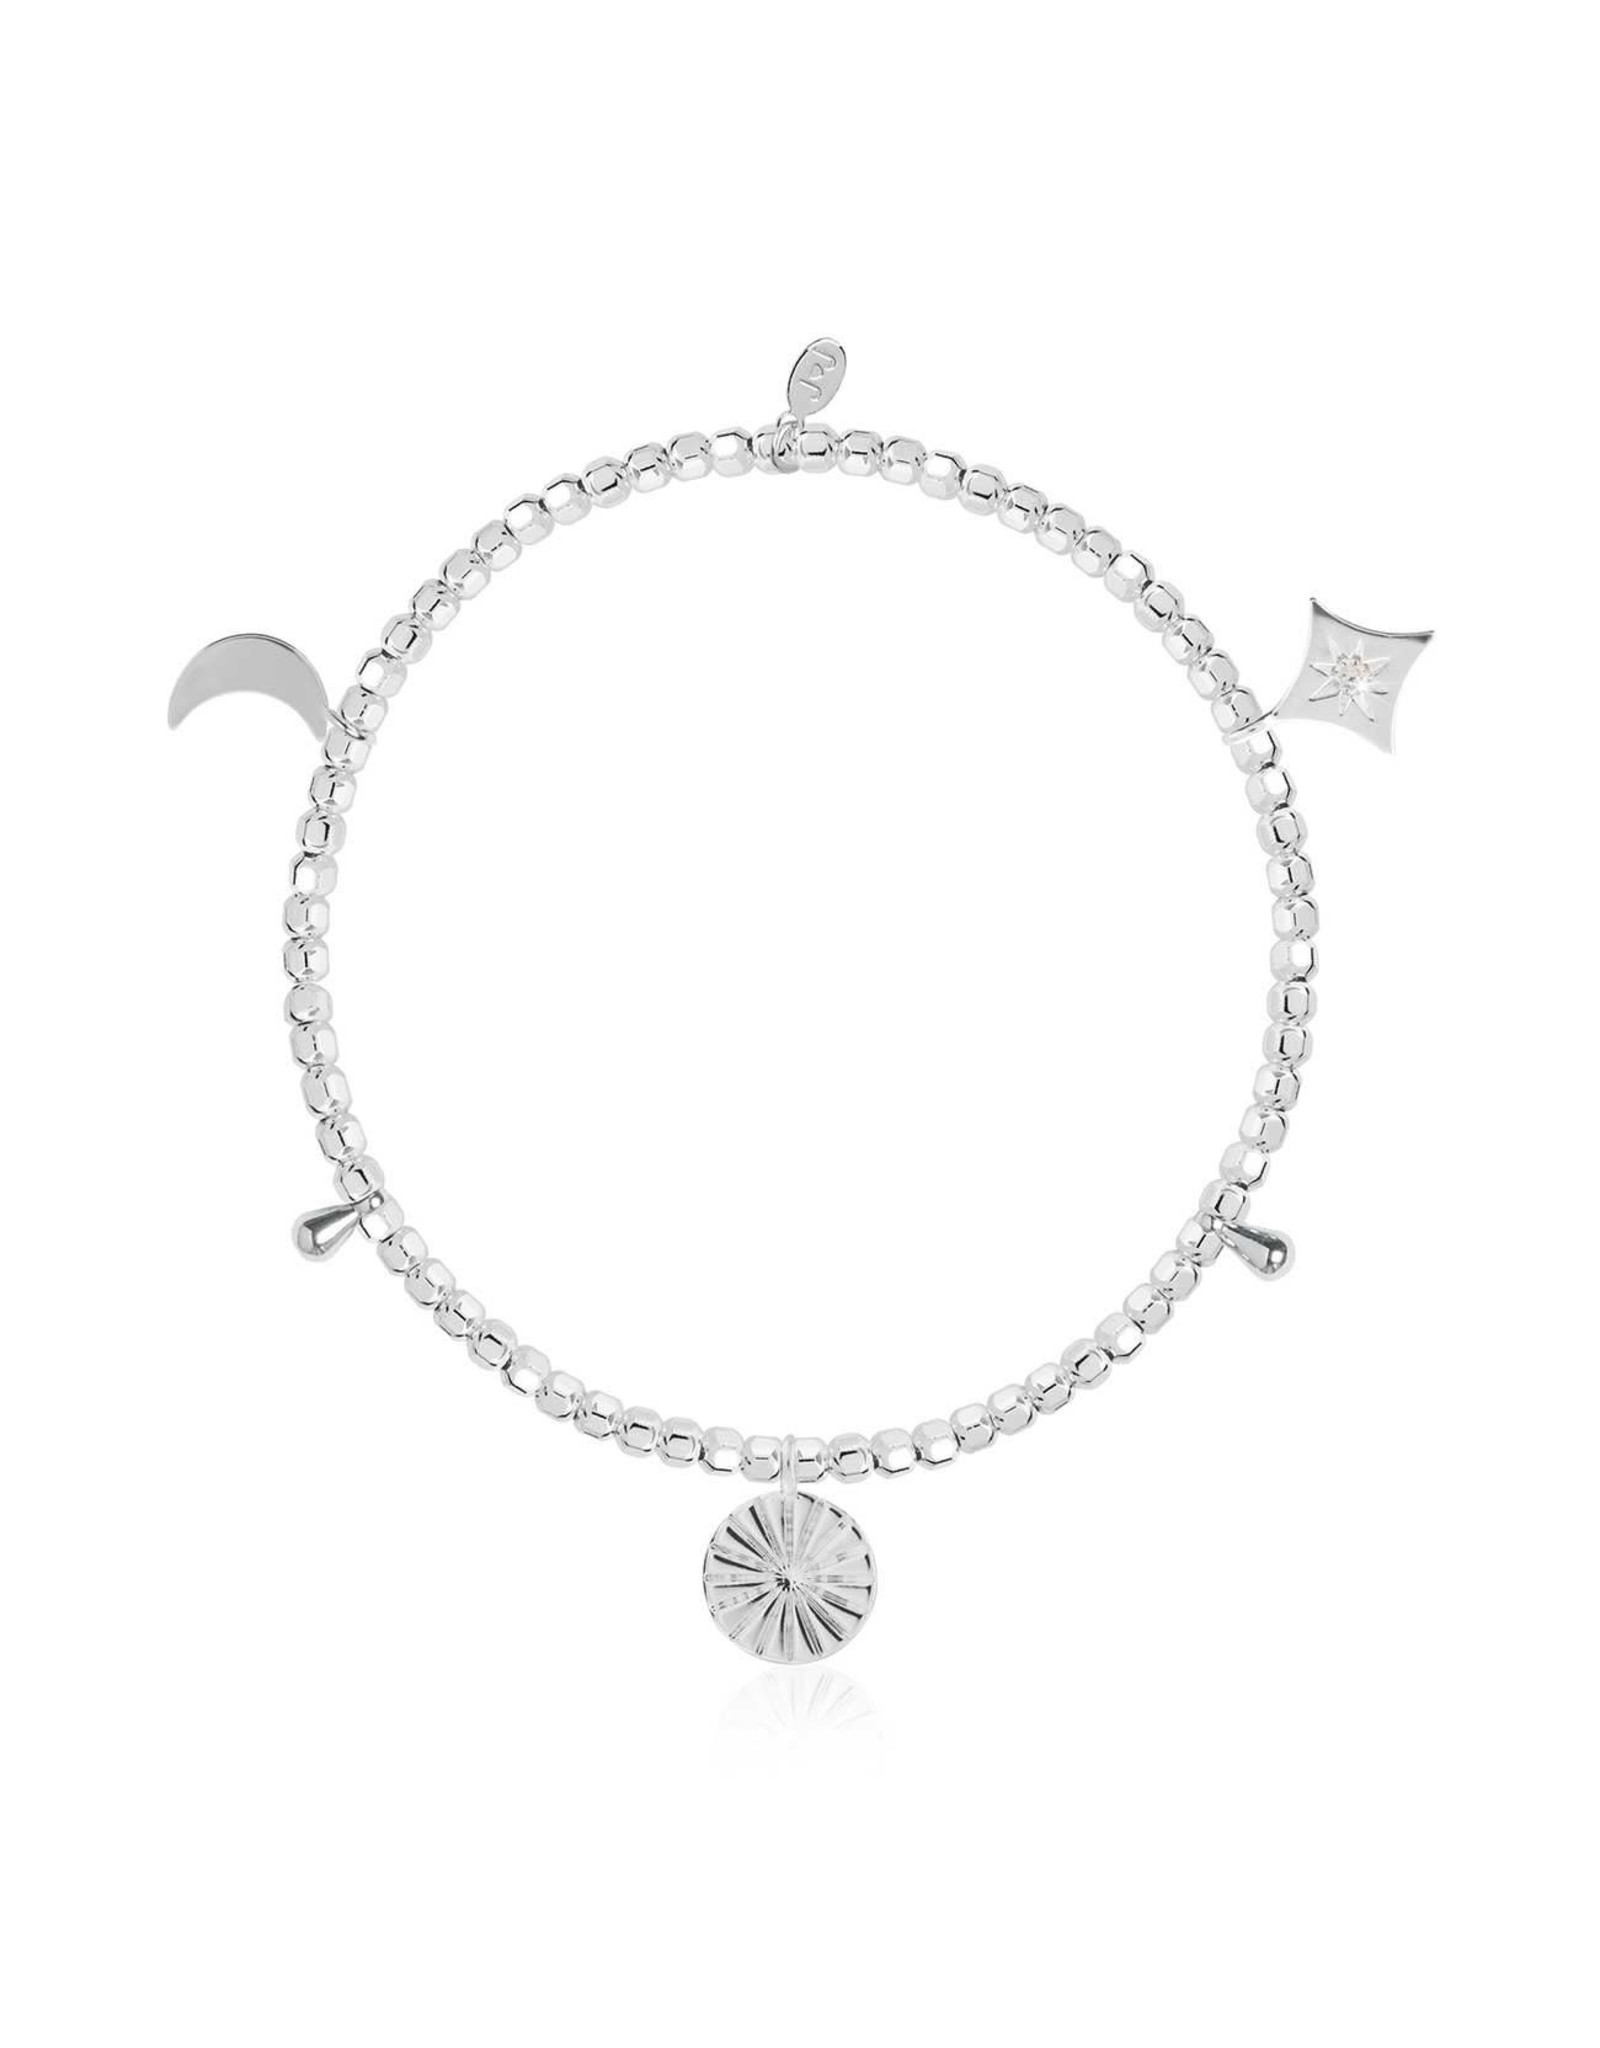 Joma Jewellery Life's a Charm - One in a Million